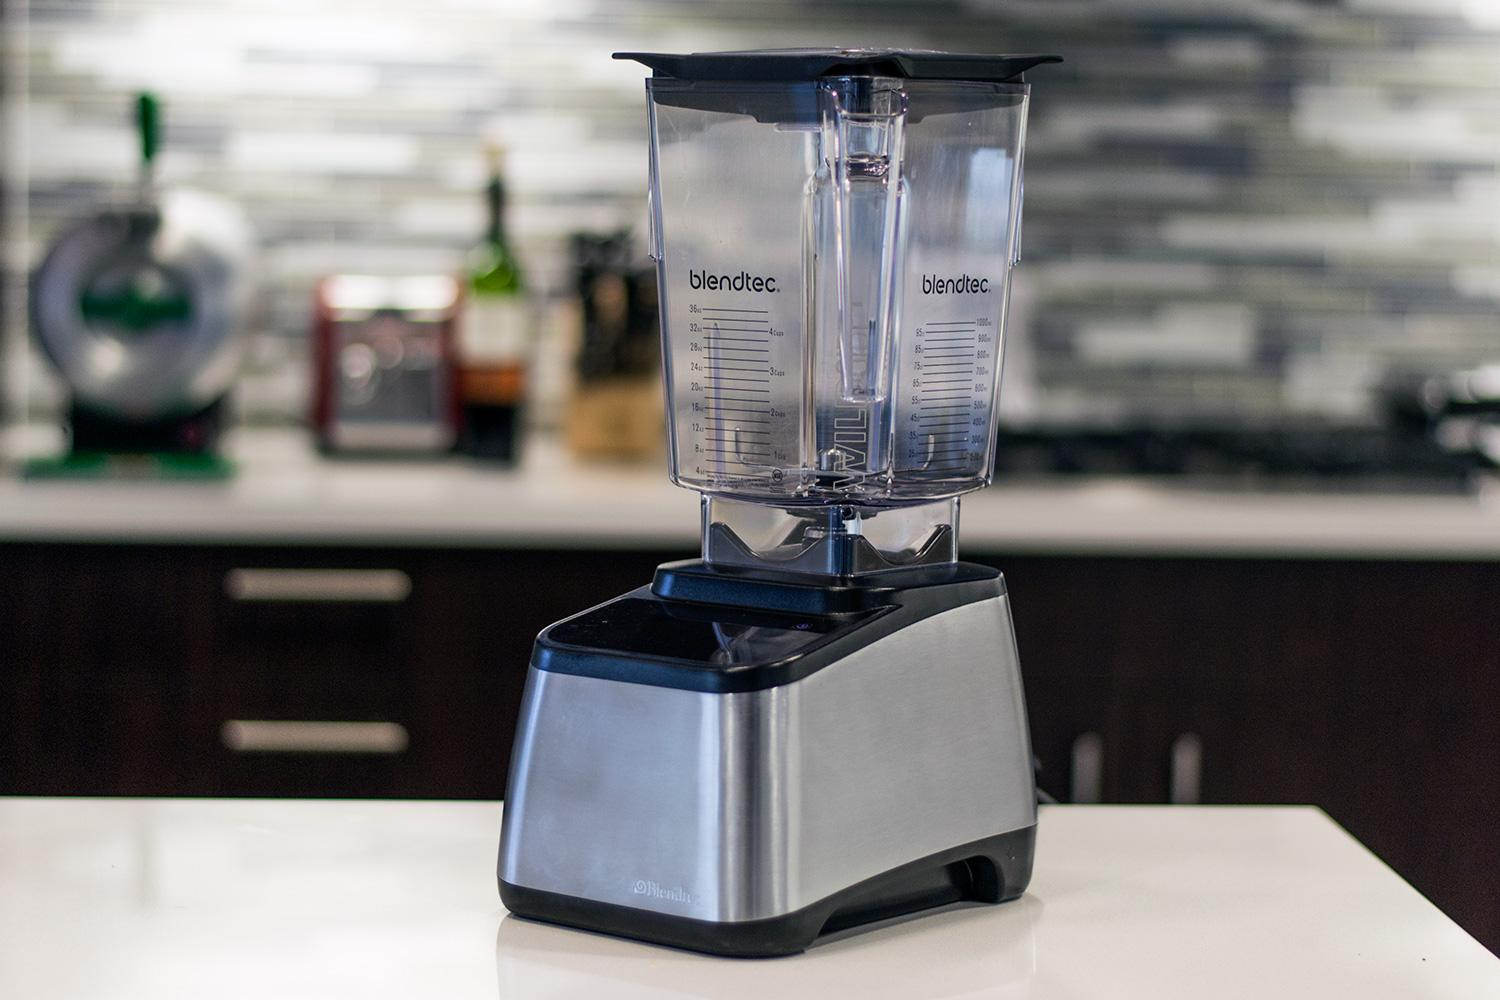 Blendtec-Designer-725-blender-review-overview-2